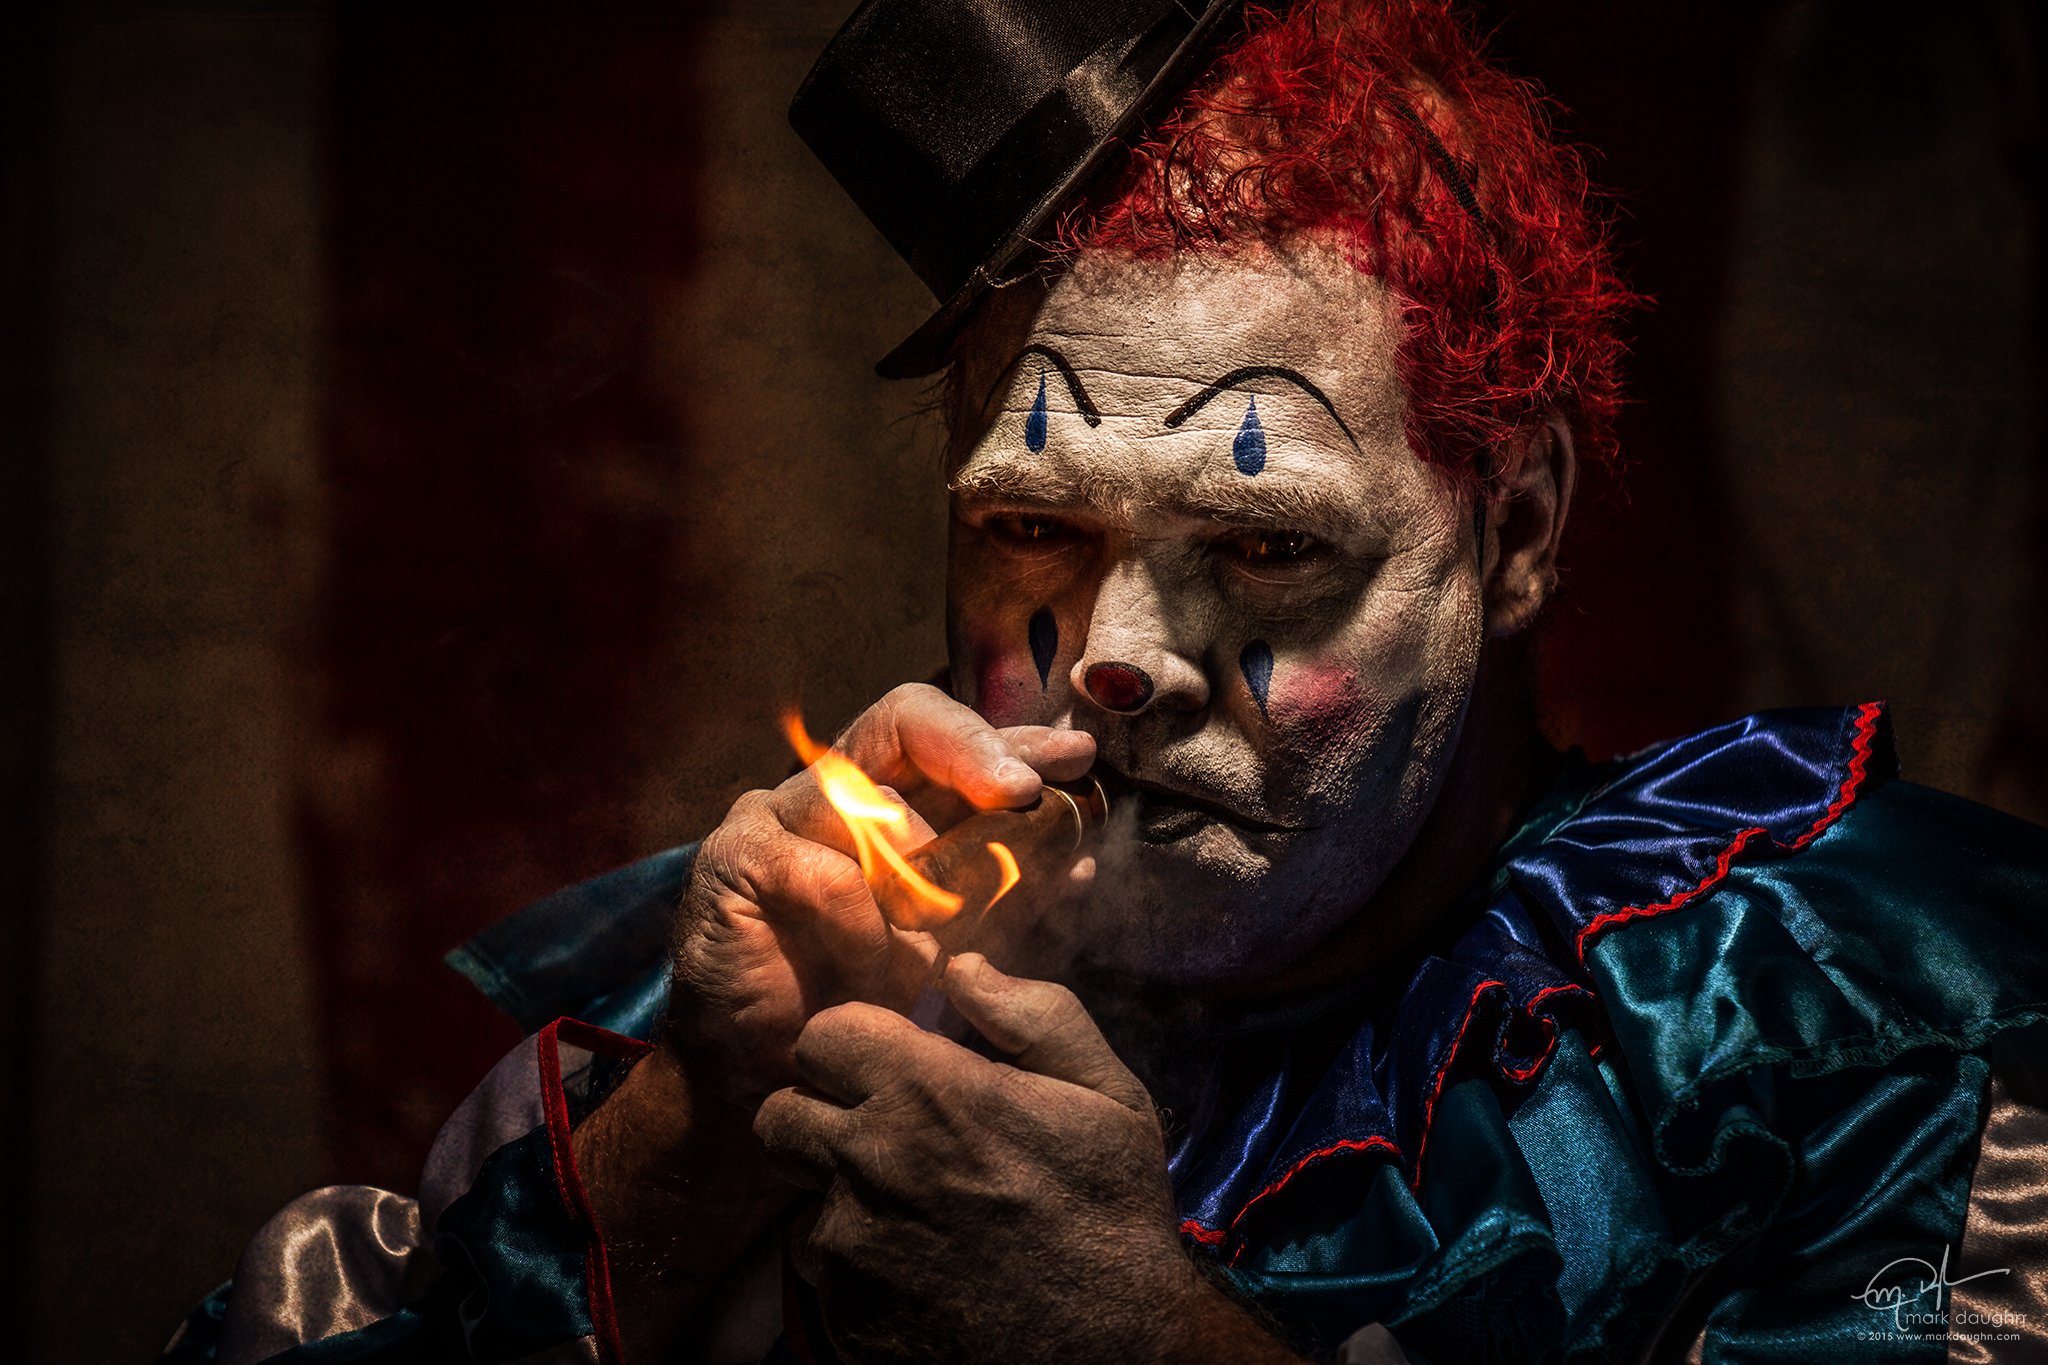 The Clown Project #4 by markdaughn